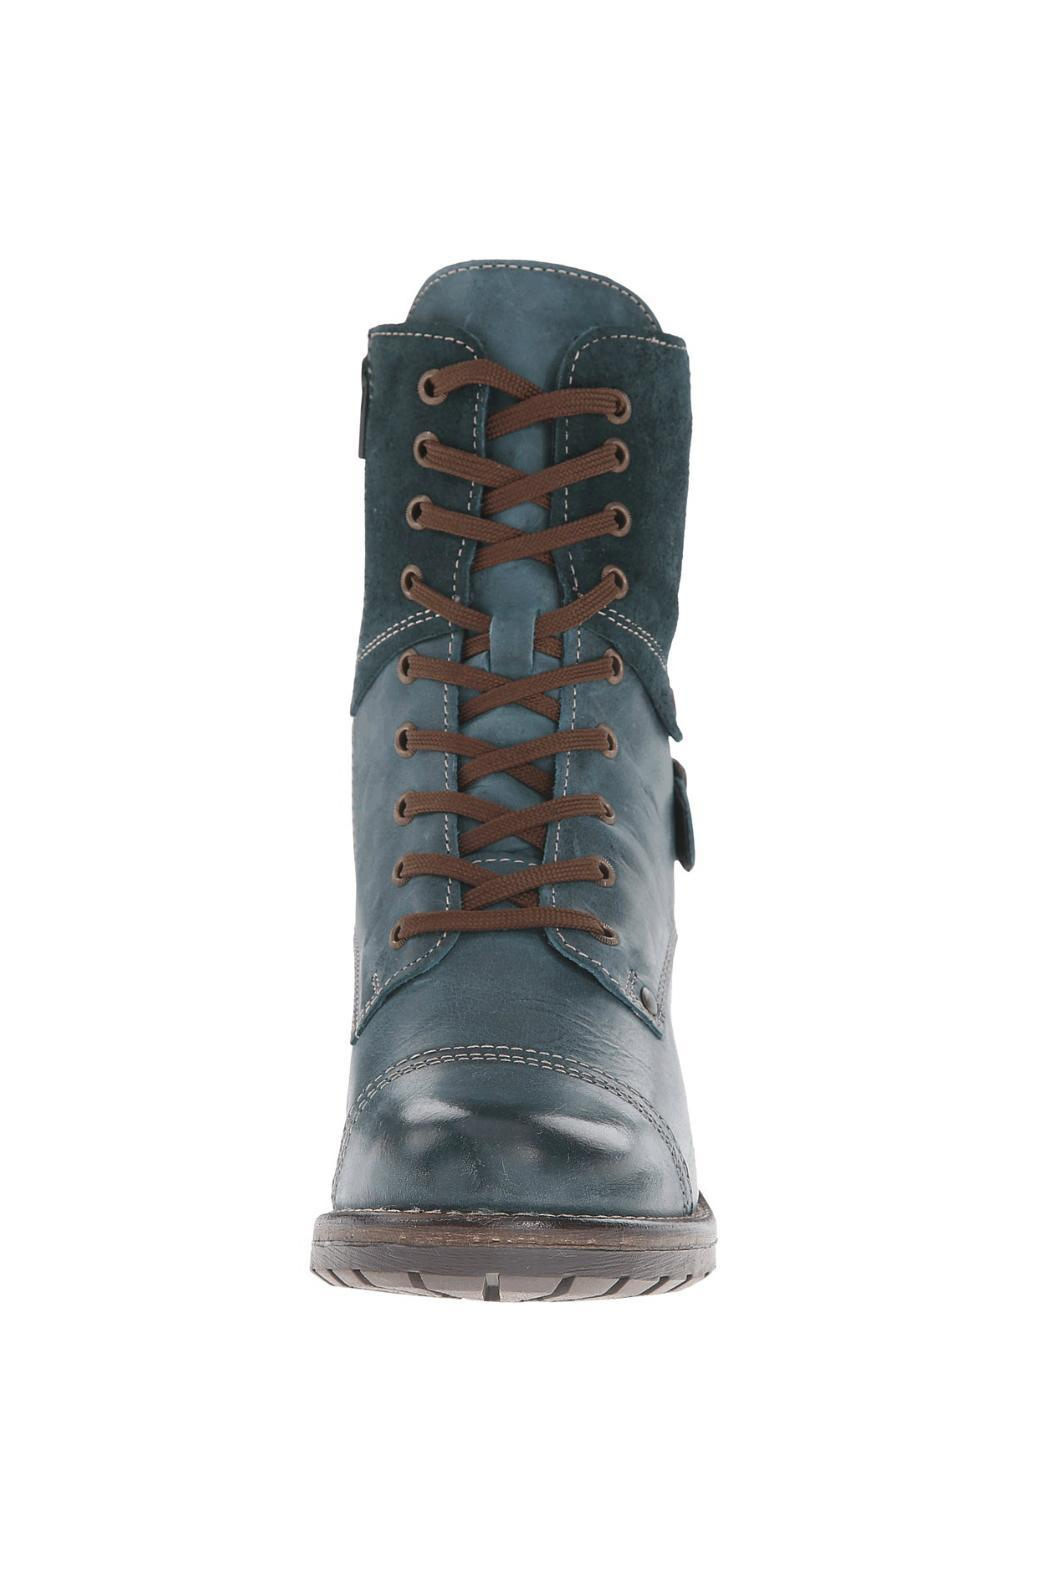 Back lace up boots - Taos Crave Lace Up Boot Back Cropped Image